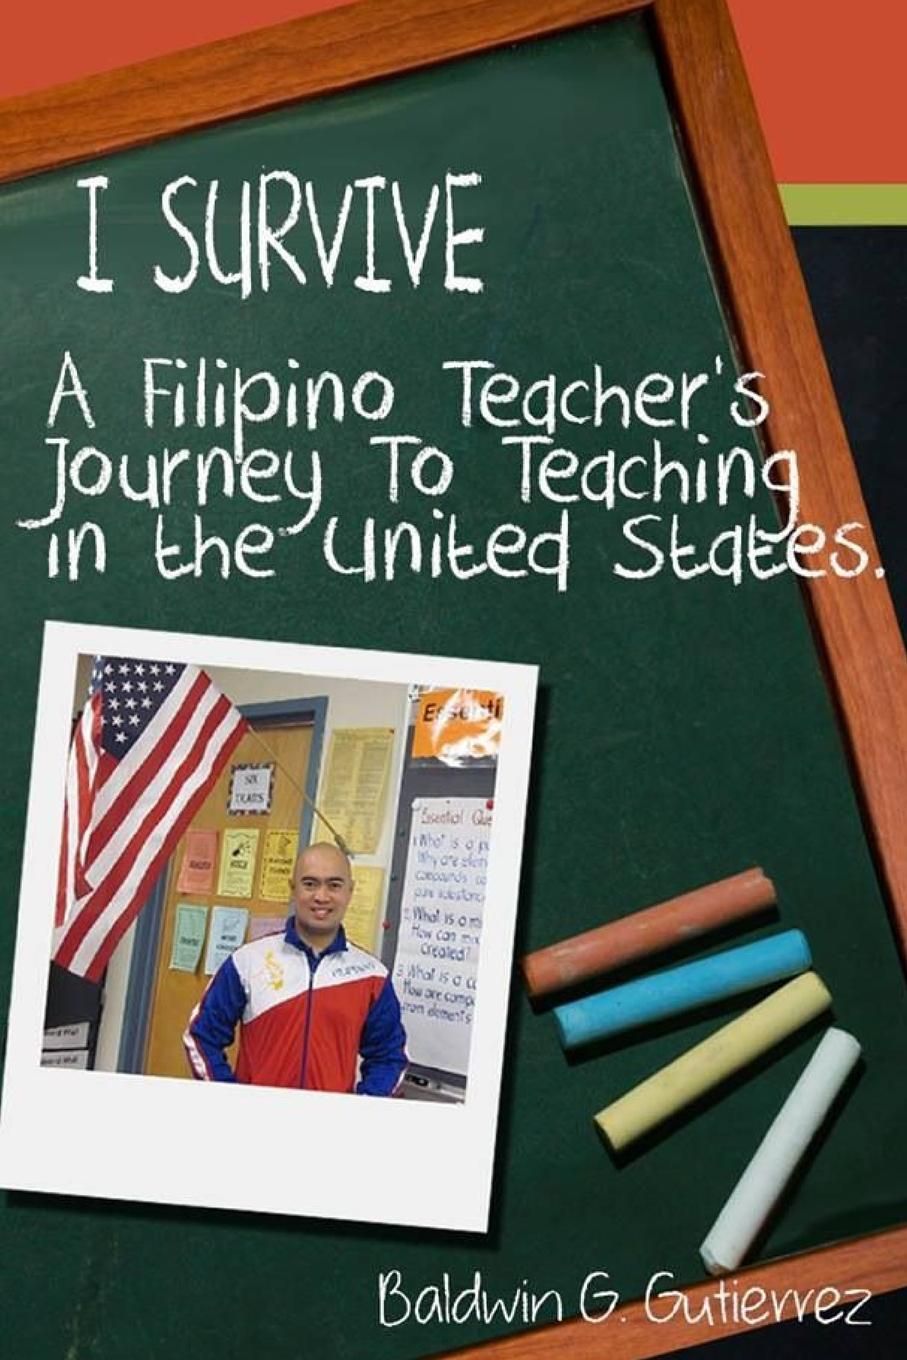 Baldwin Gutierrez I Survive (a Filipino Teacher.s Journey to Teaching in the United States) journey to athens intermediate the united states olympic committee activity book